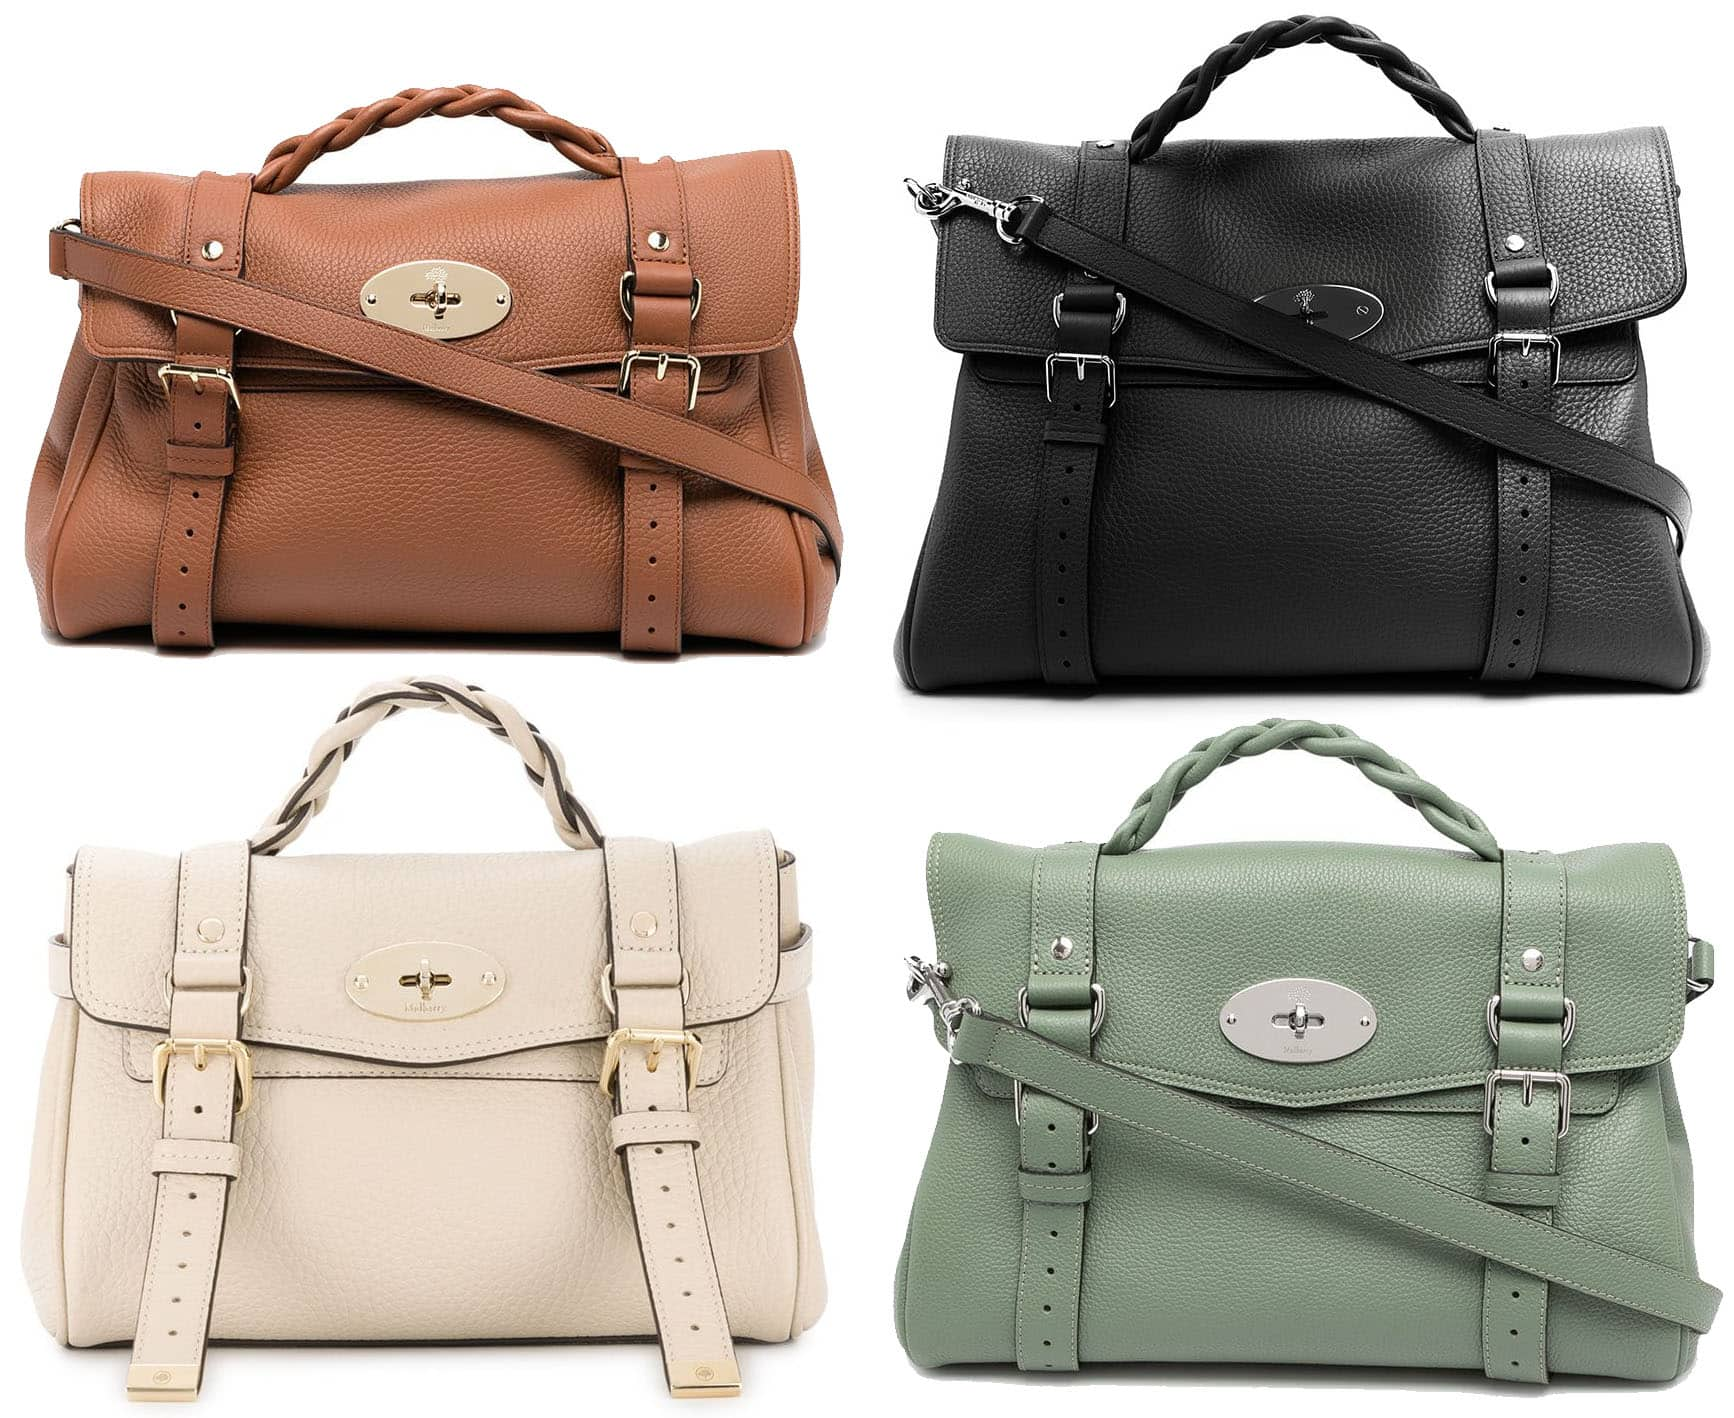 The Alexa is arguably Mulberry's most popular bag style